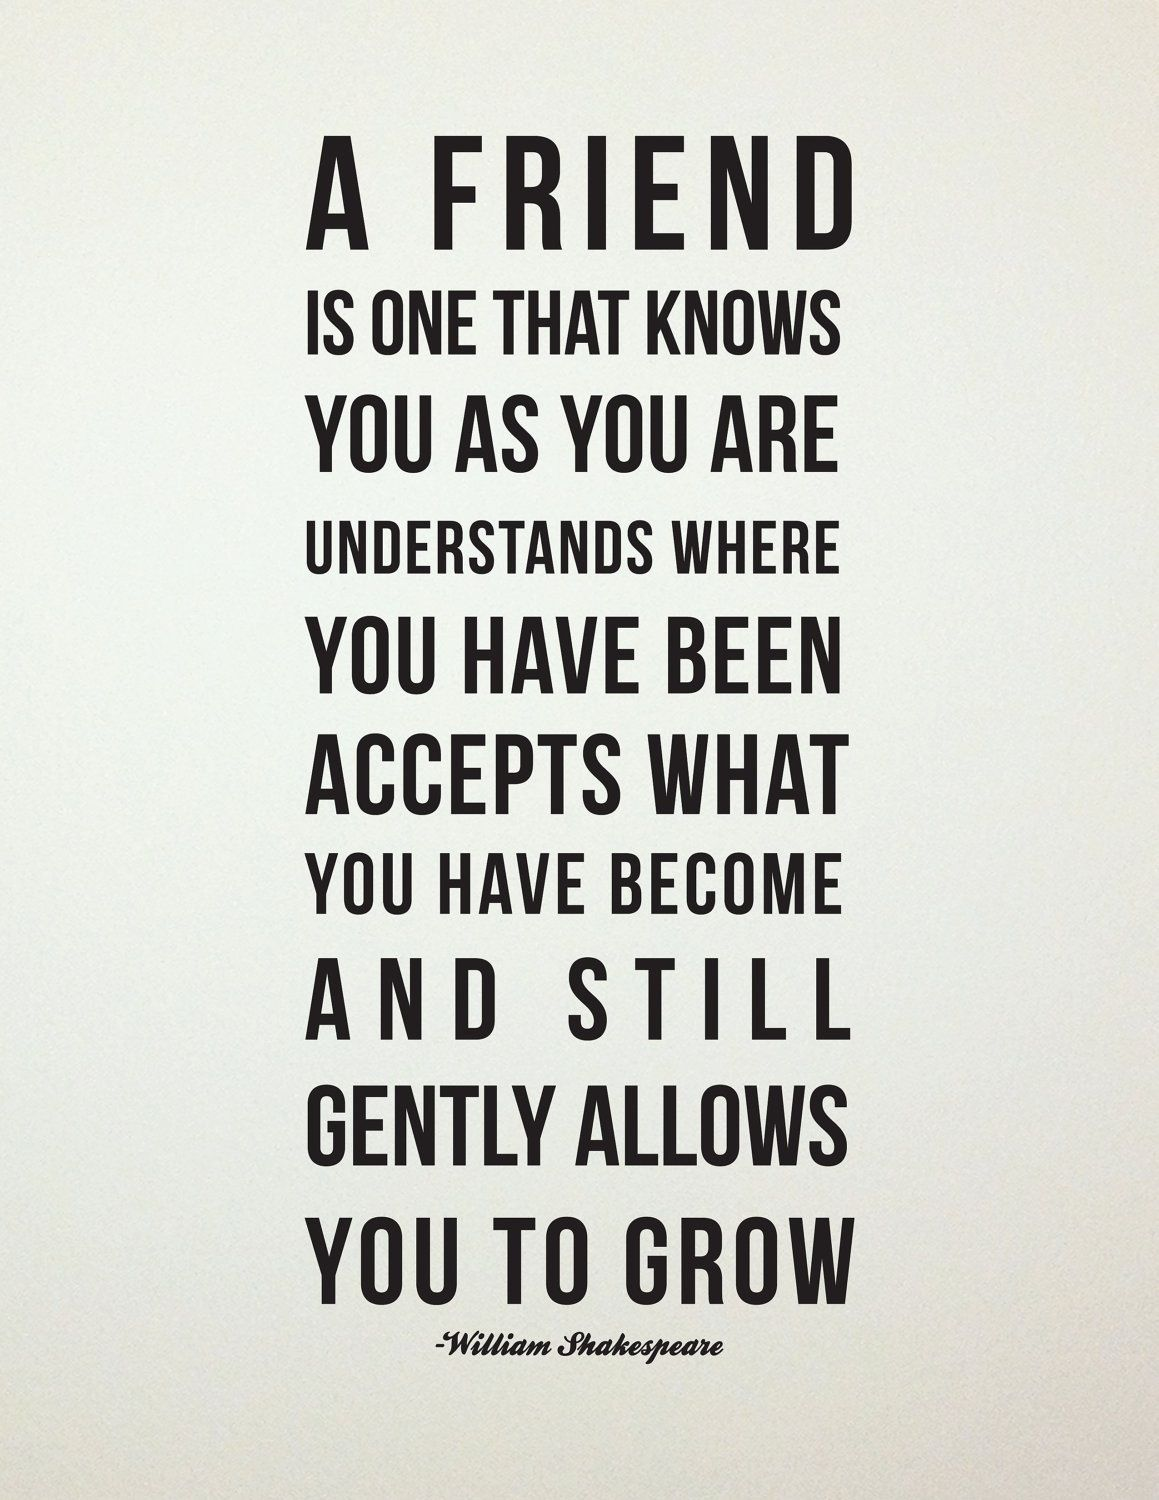 Definition Of A Friend Shakespeare Quotes On Friendship Inspirational Quotes Friends Quotes